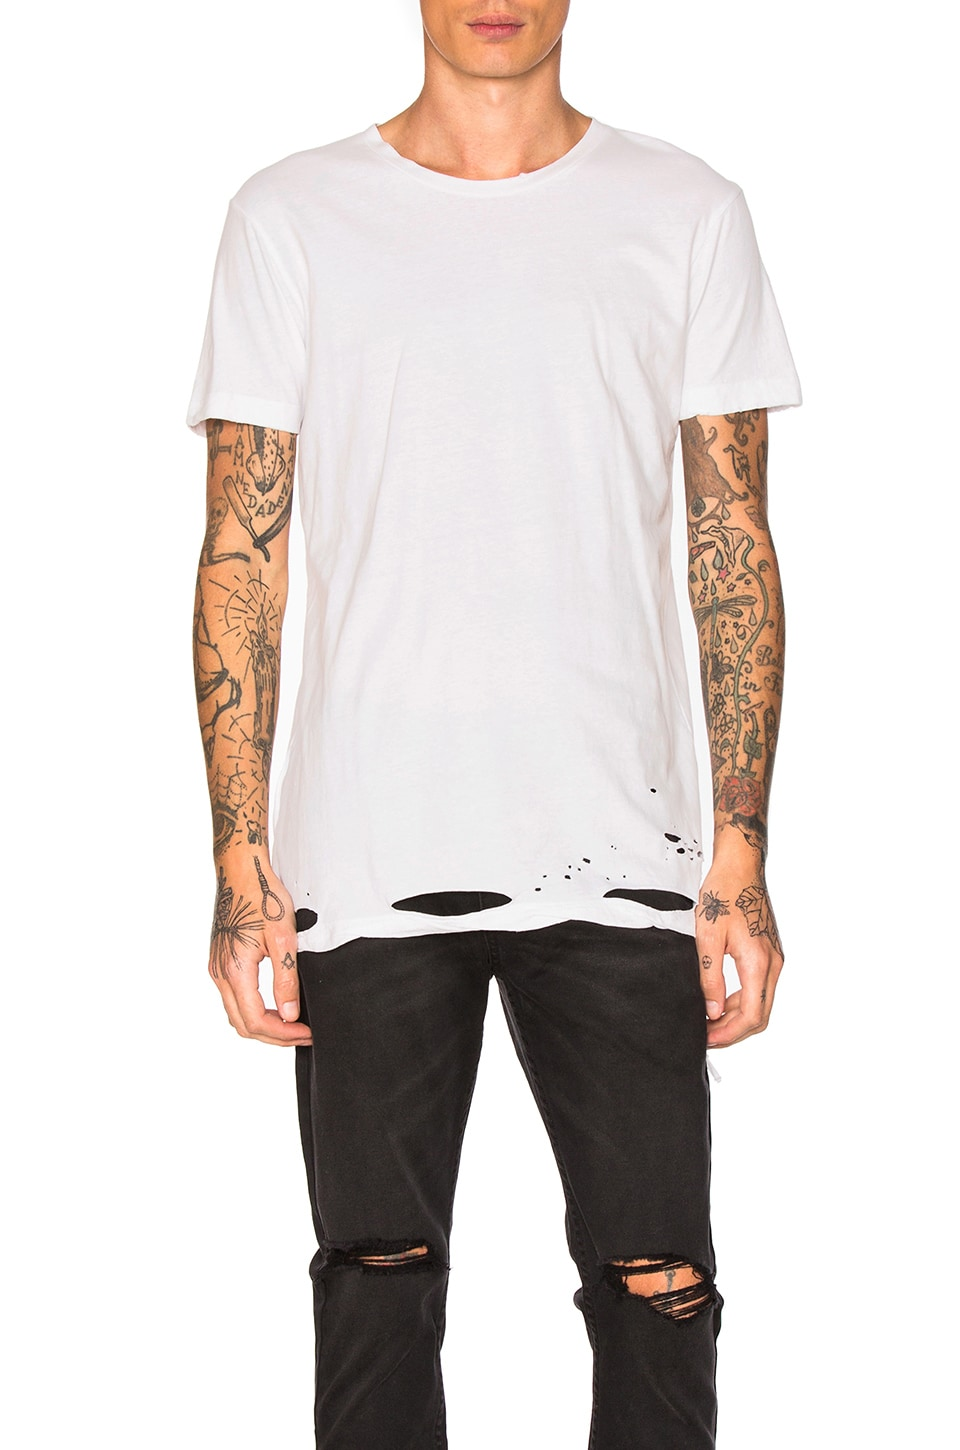 Sioux Tee by Ksubi